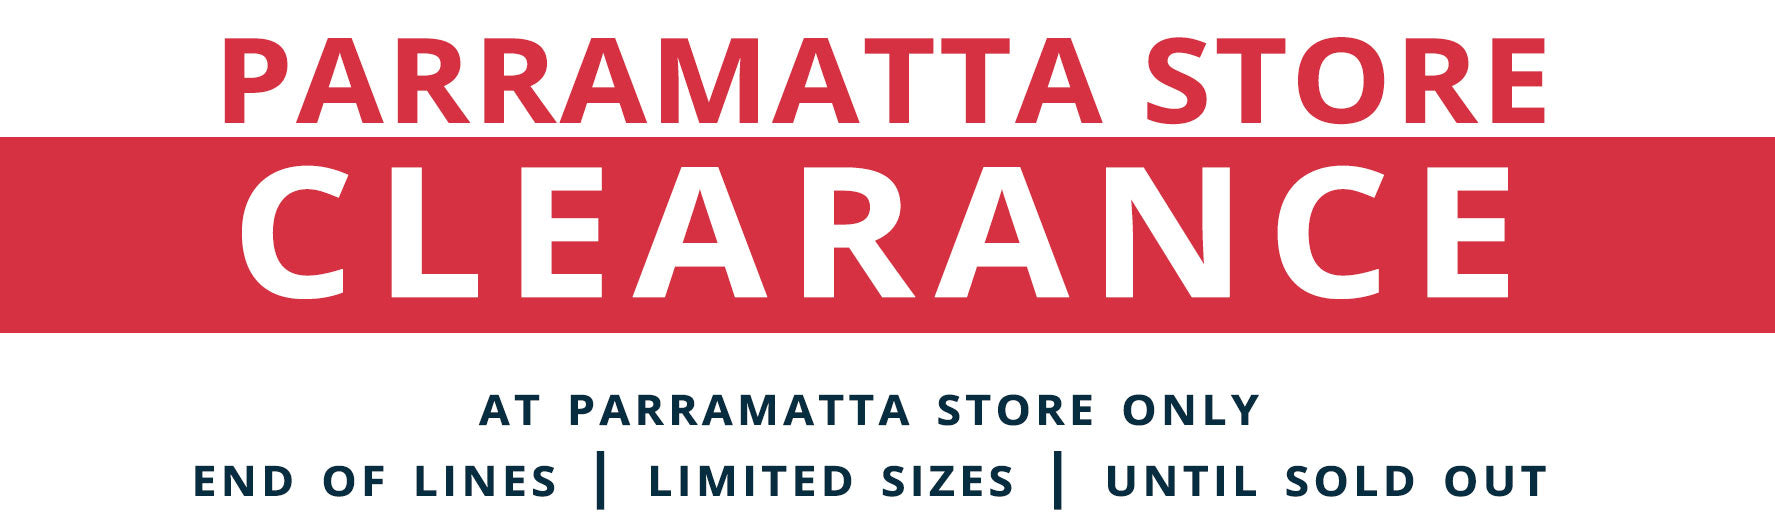 Parramatta Clearance Department